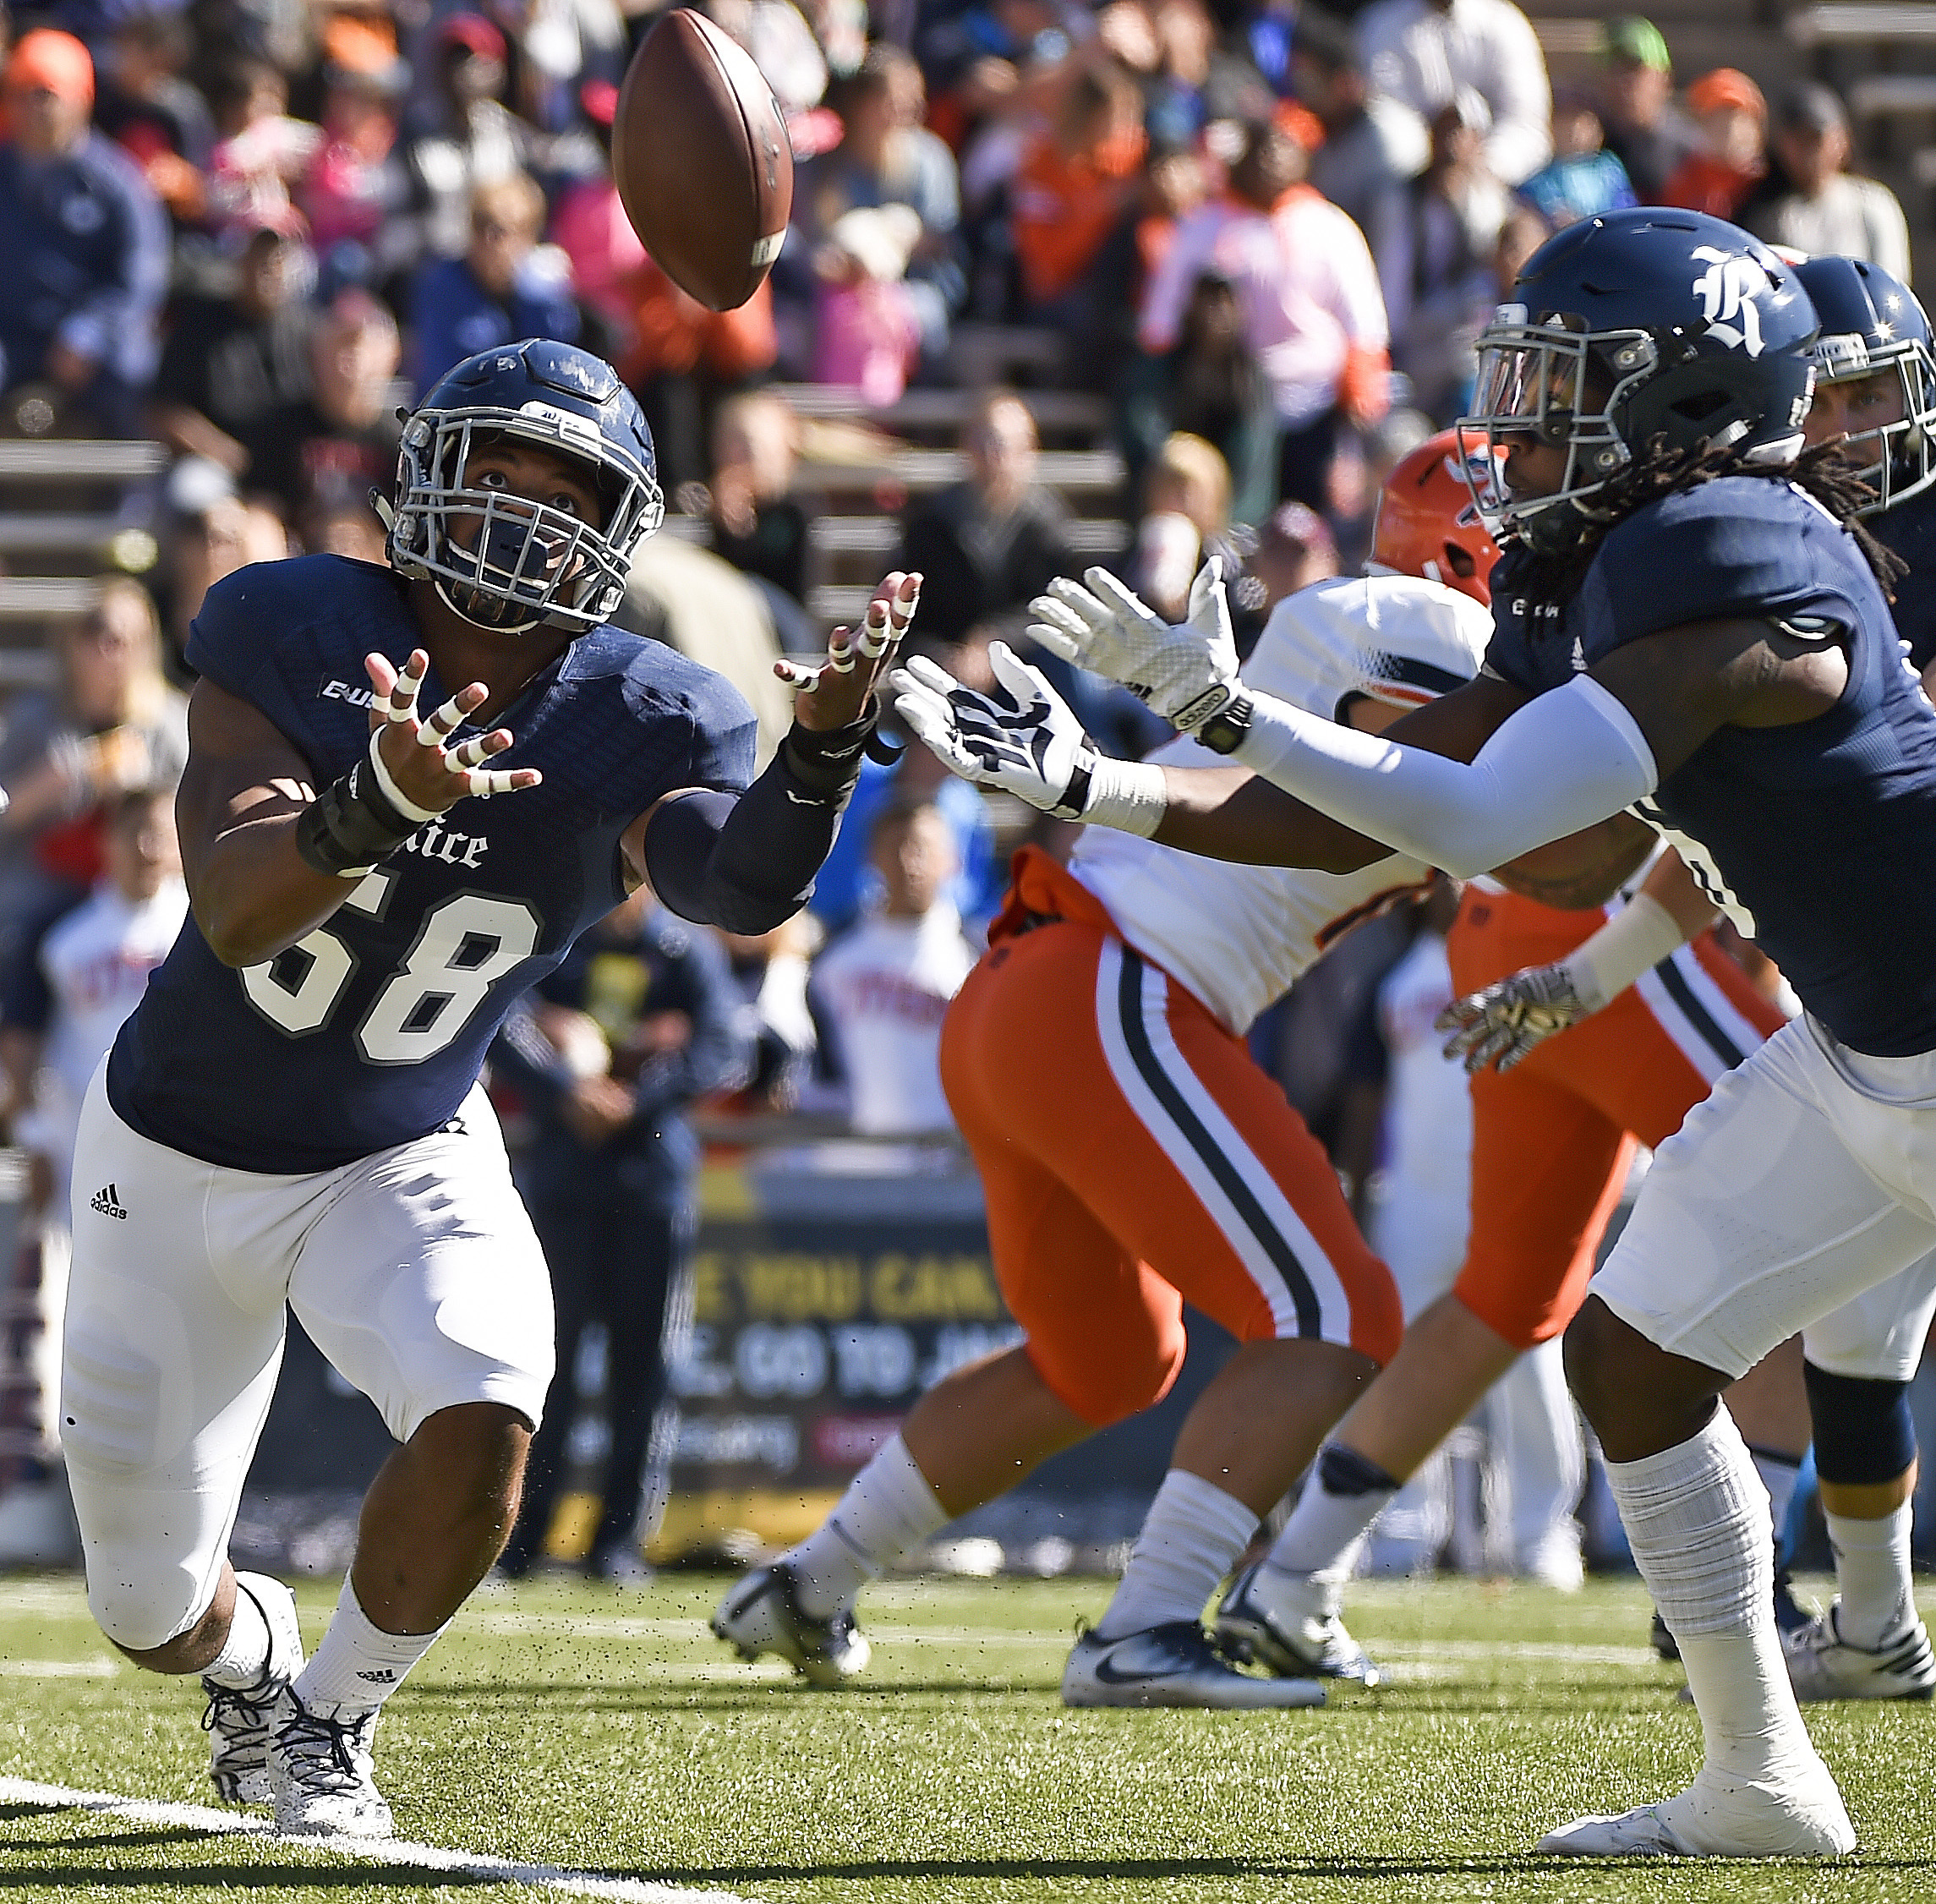 Rice linebacker Emmanuel Ellerbee, left, and safety Destri White try to catch a deflected pass during the first half of an NCAA college football game against UTEP, Saturday, Nov. 19, 2016, in Houston. (AP Photo/Eric Christian Smith)